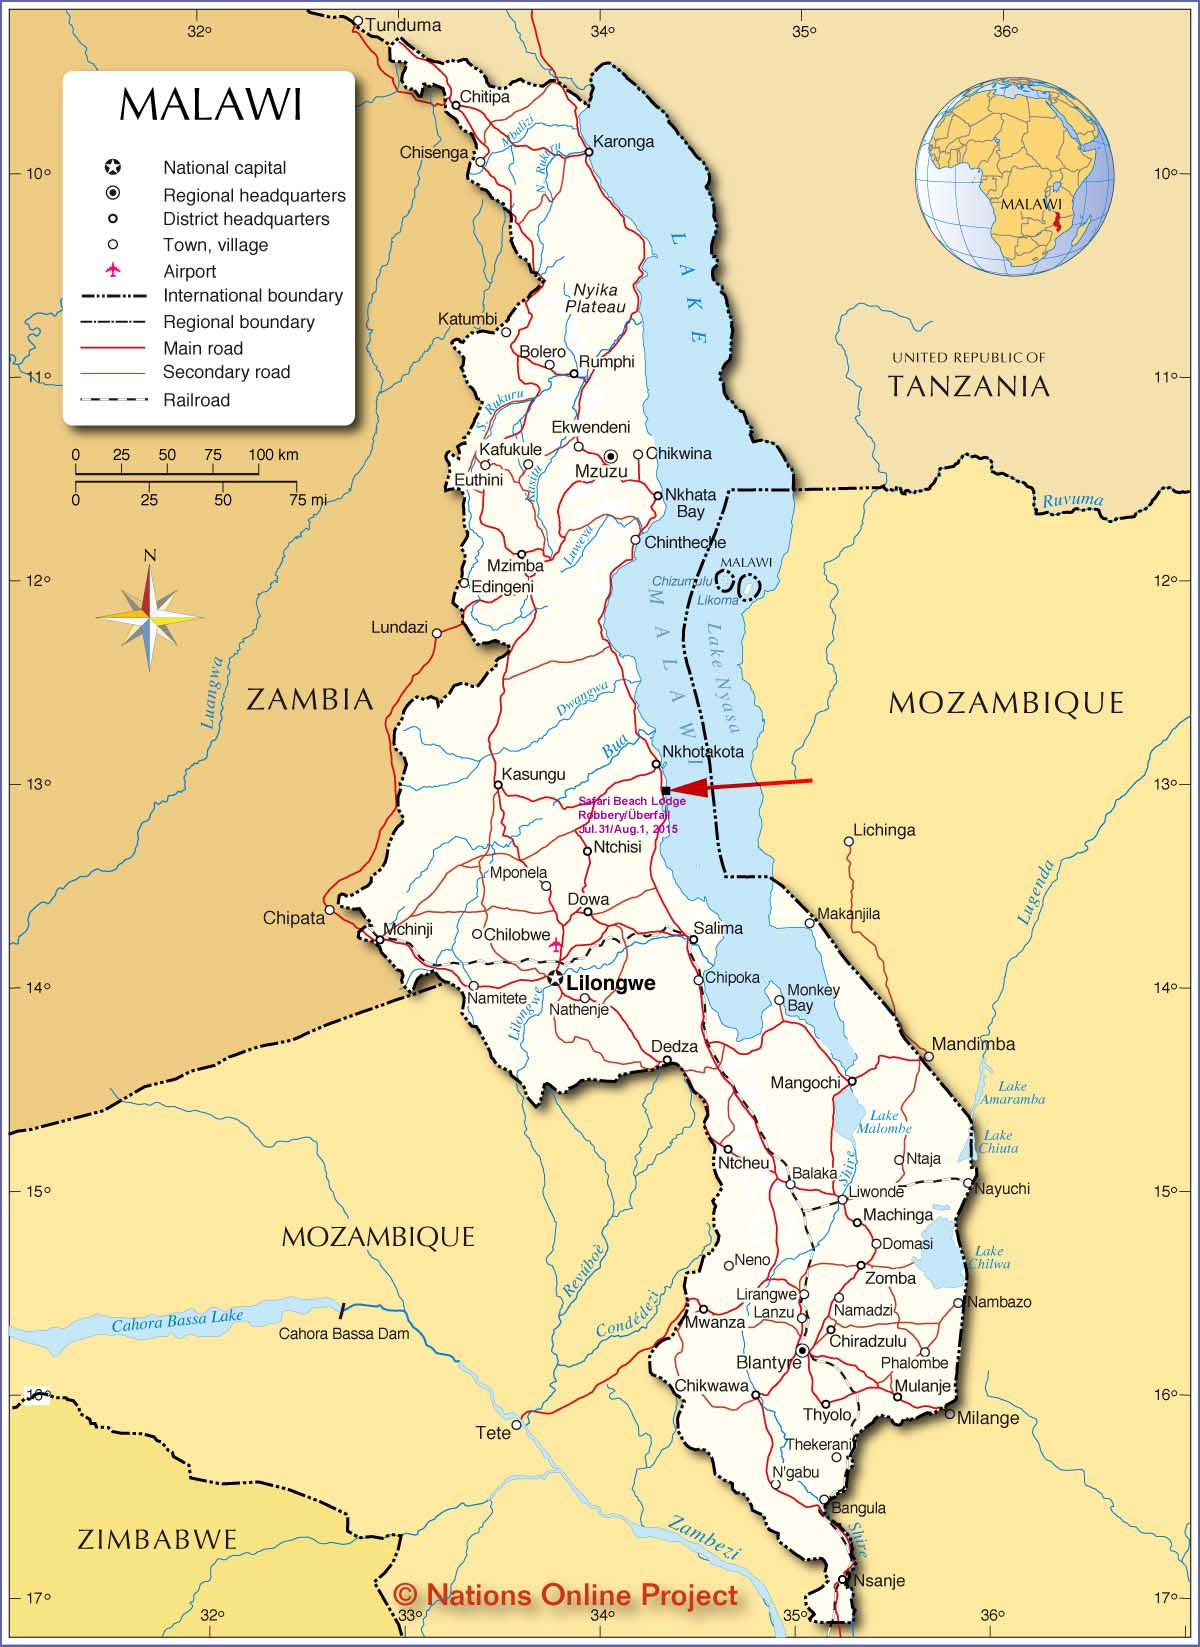 Malawi On Africa Map.Worldrecordtour Story Diary Pictures Africa Malalwi Lake